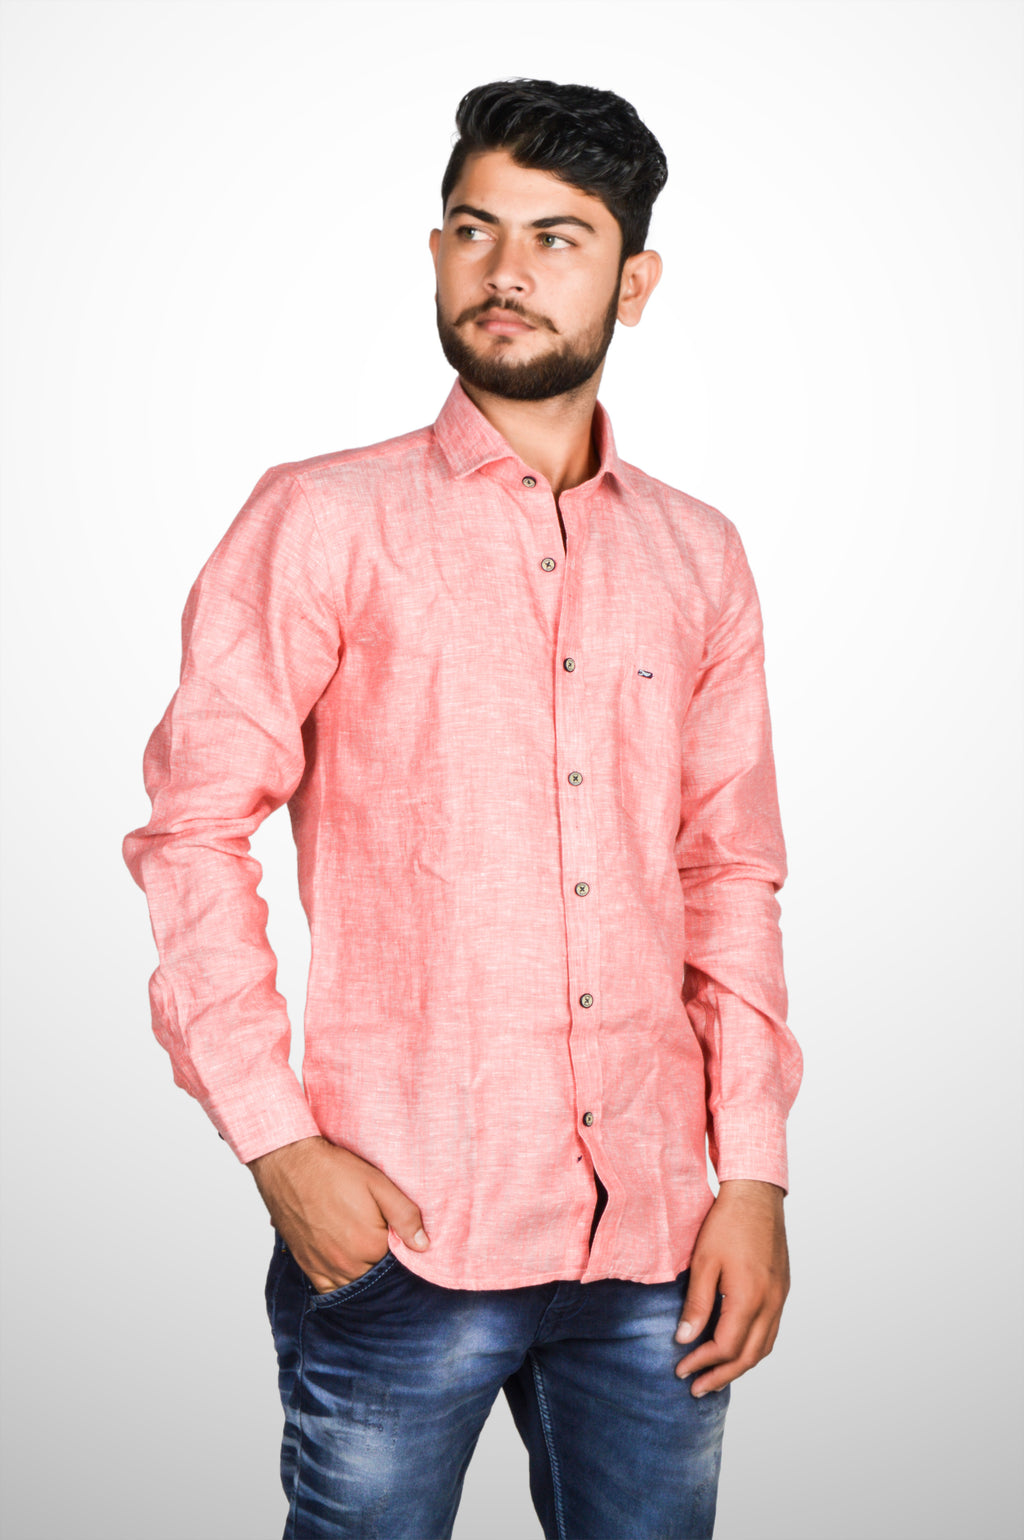 Zerox Men's Plain Pure Linen Full Sleeves Regular Fit Formal Shirt (Pink) By Indians Boutique